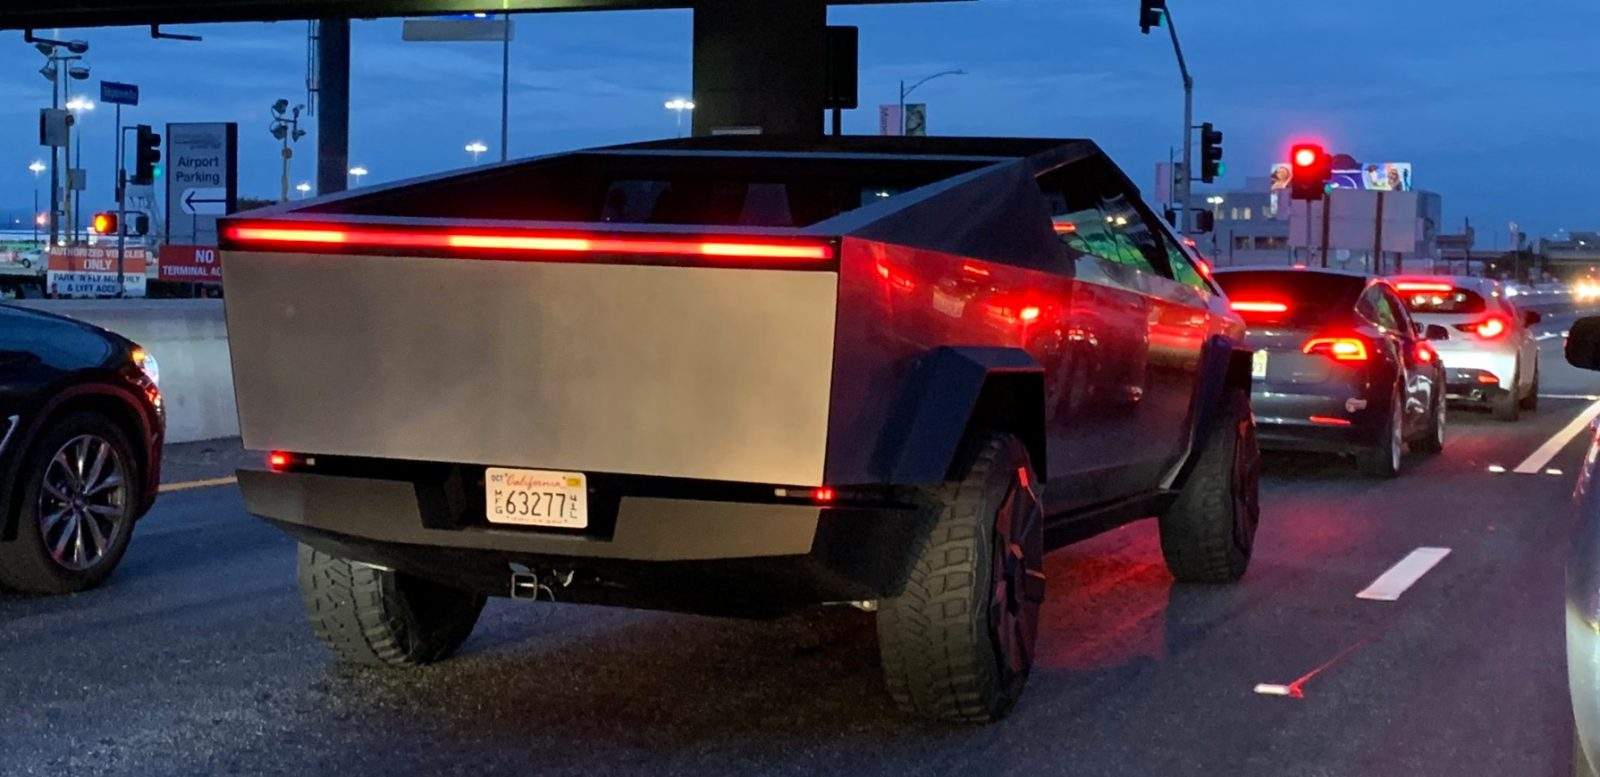 Tesla Cybertruck prototype spotted in the wild – looks massive